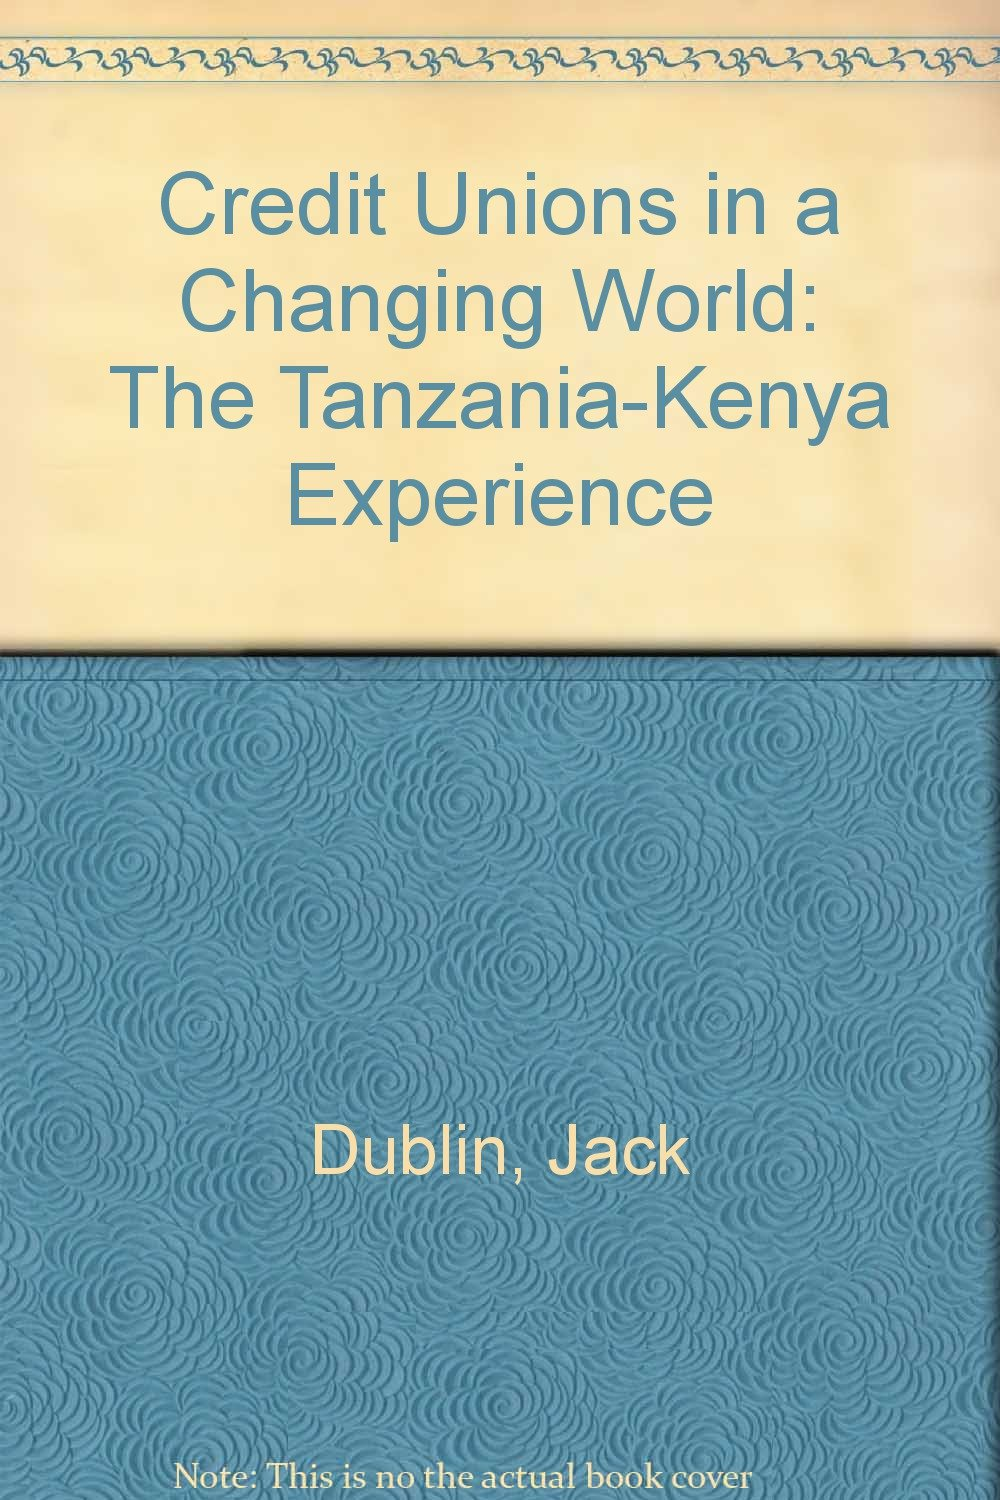 Credit Unions in a Changing World: The Tanzania-Kenya Experience, Dublin, Jack